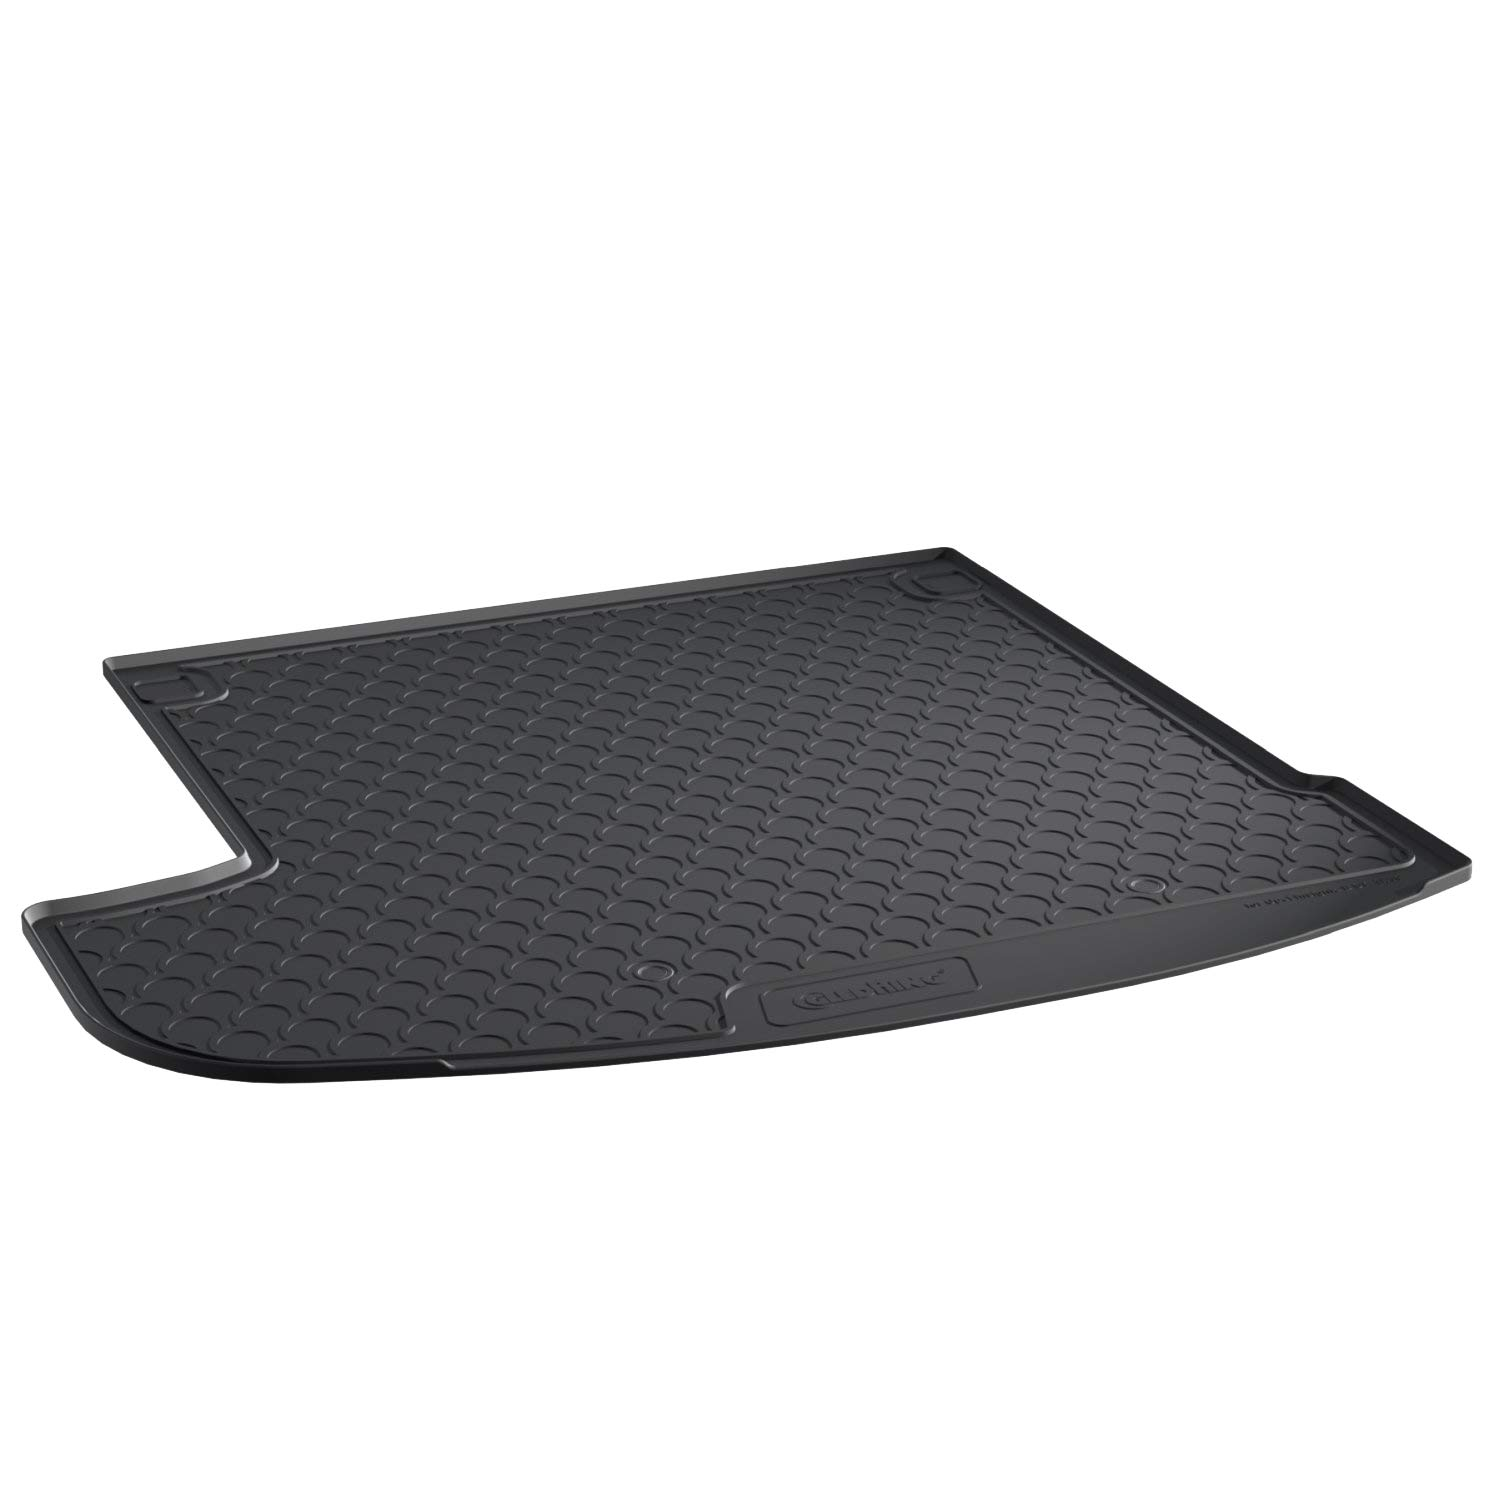 Charcoal Carpet Insert Fully Tailored PVC Boot Liner//Mat//Tray carmats4u To fit Renegade 2015